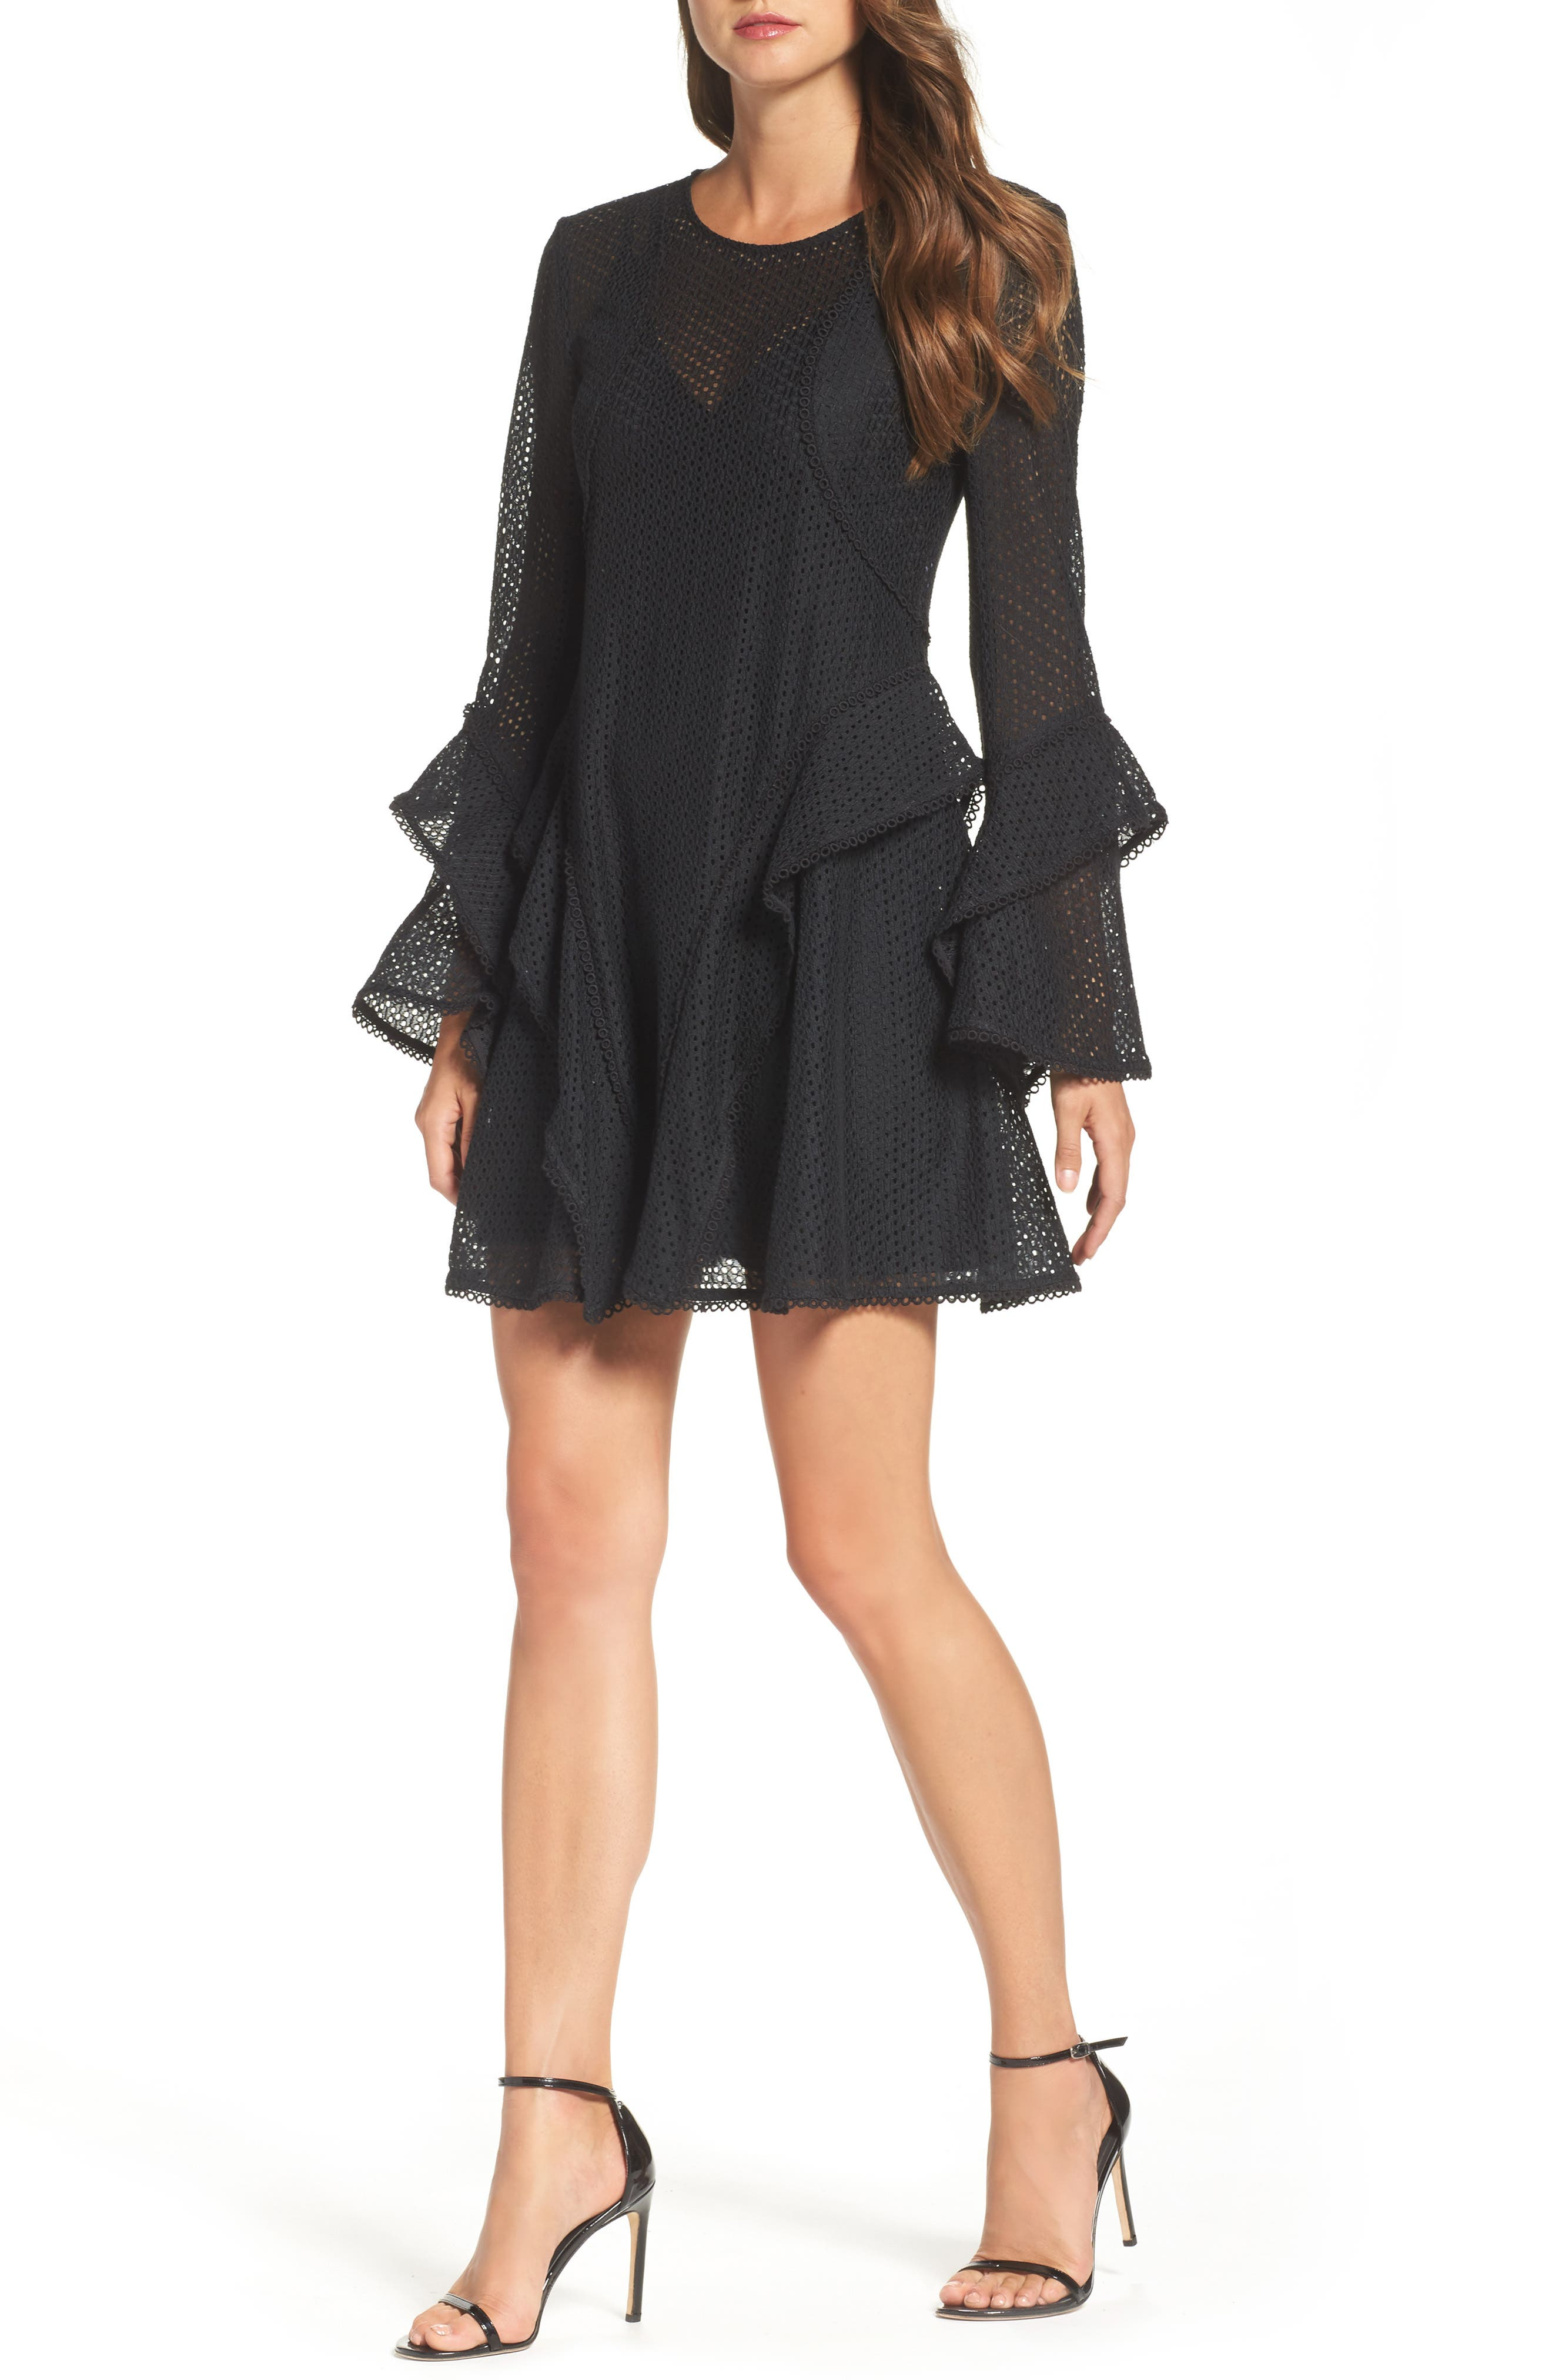 C/MEO Collective Aspire Lace Bell Sleeve Minidress